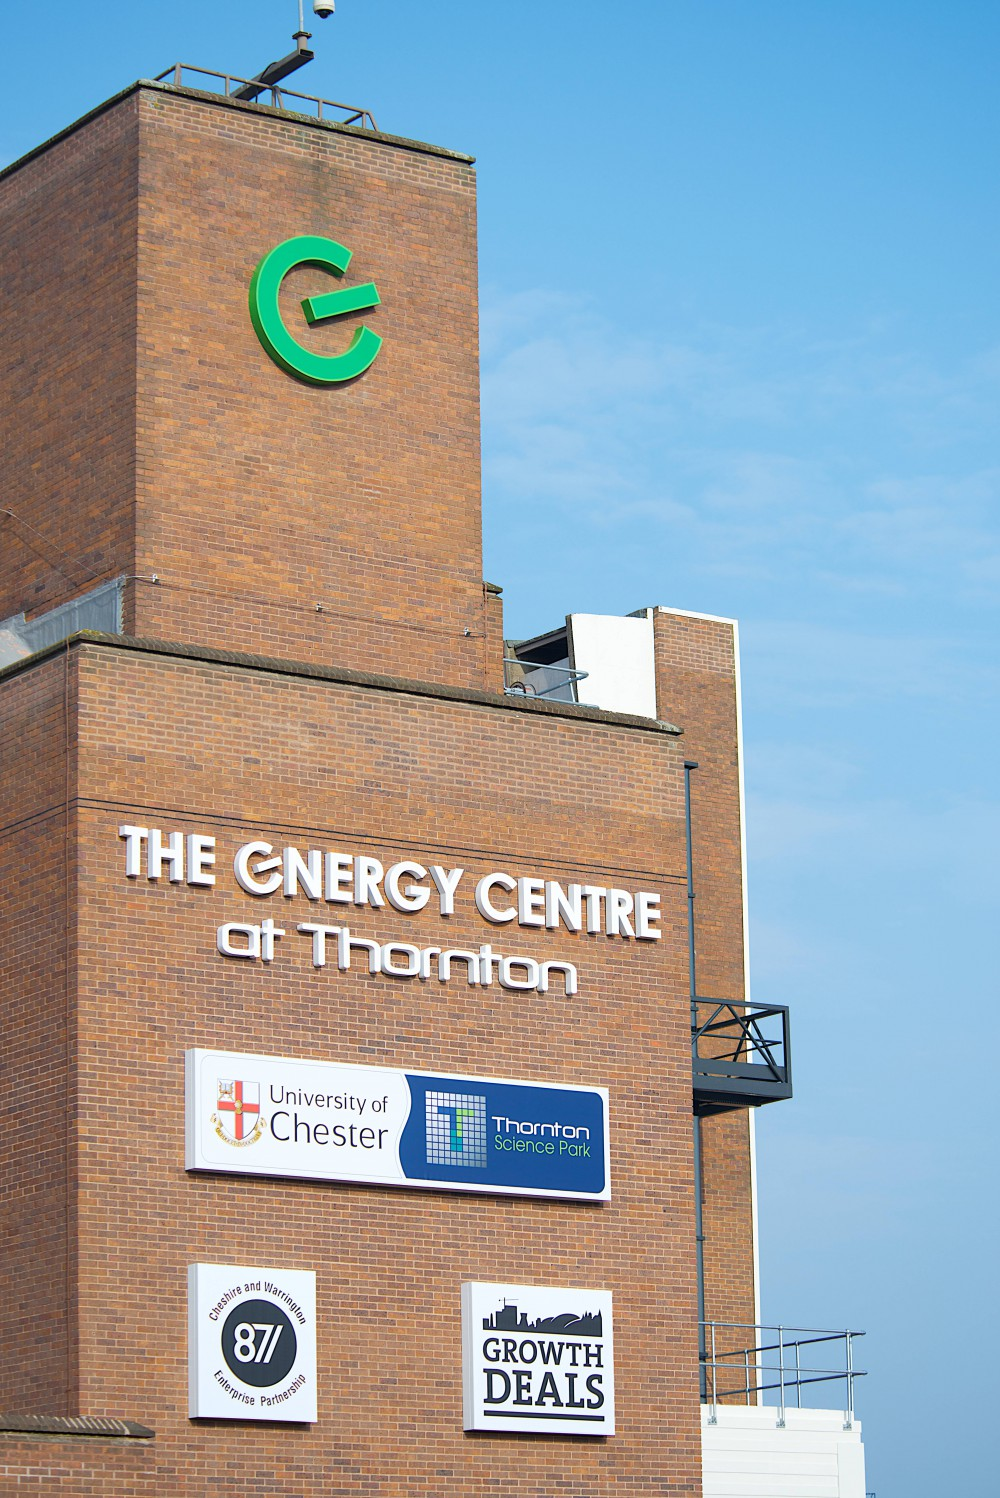 The Energy Centre at Thornton Science Park